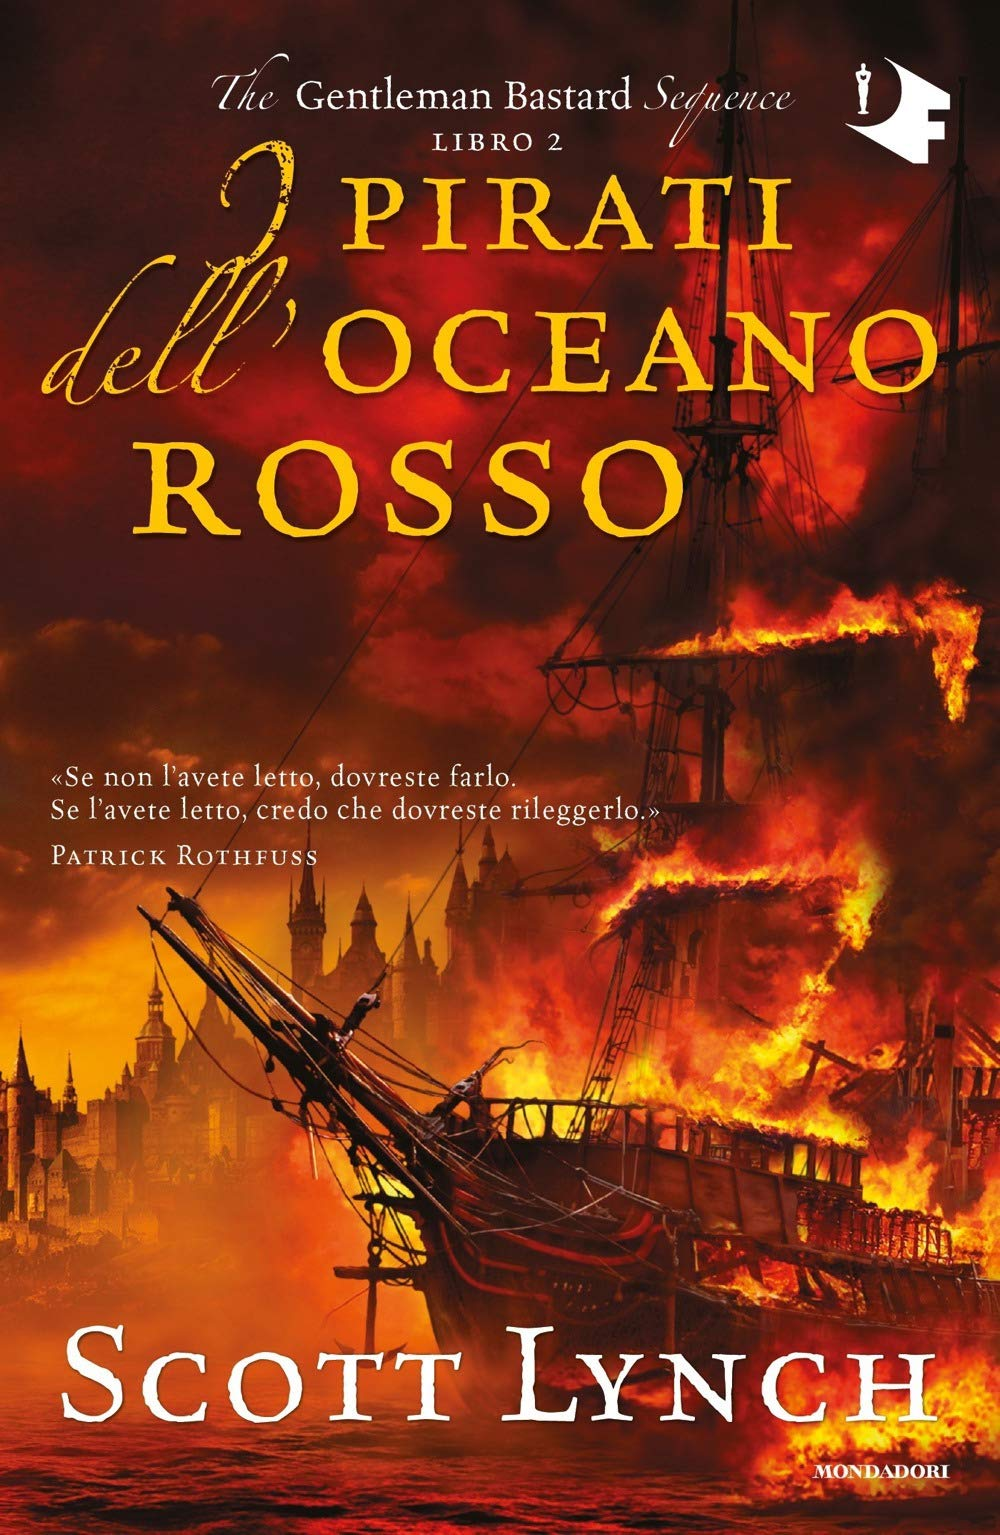 Bastardi Galantuomini. I pirati dell oceano rosso di Scott Lynch